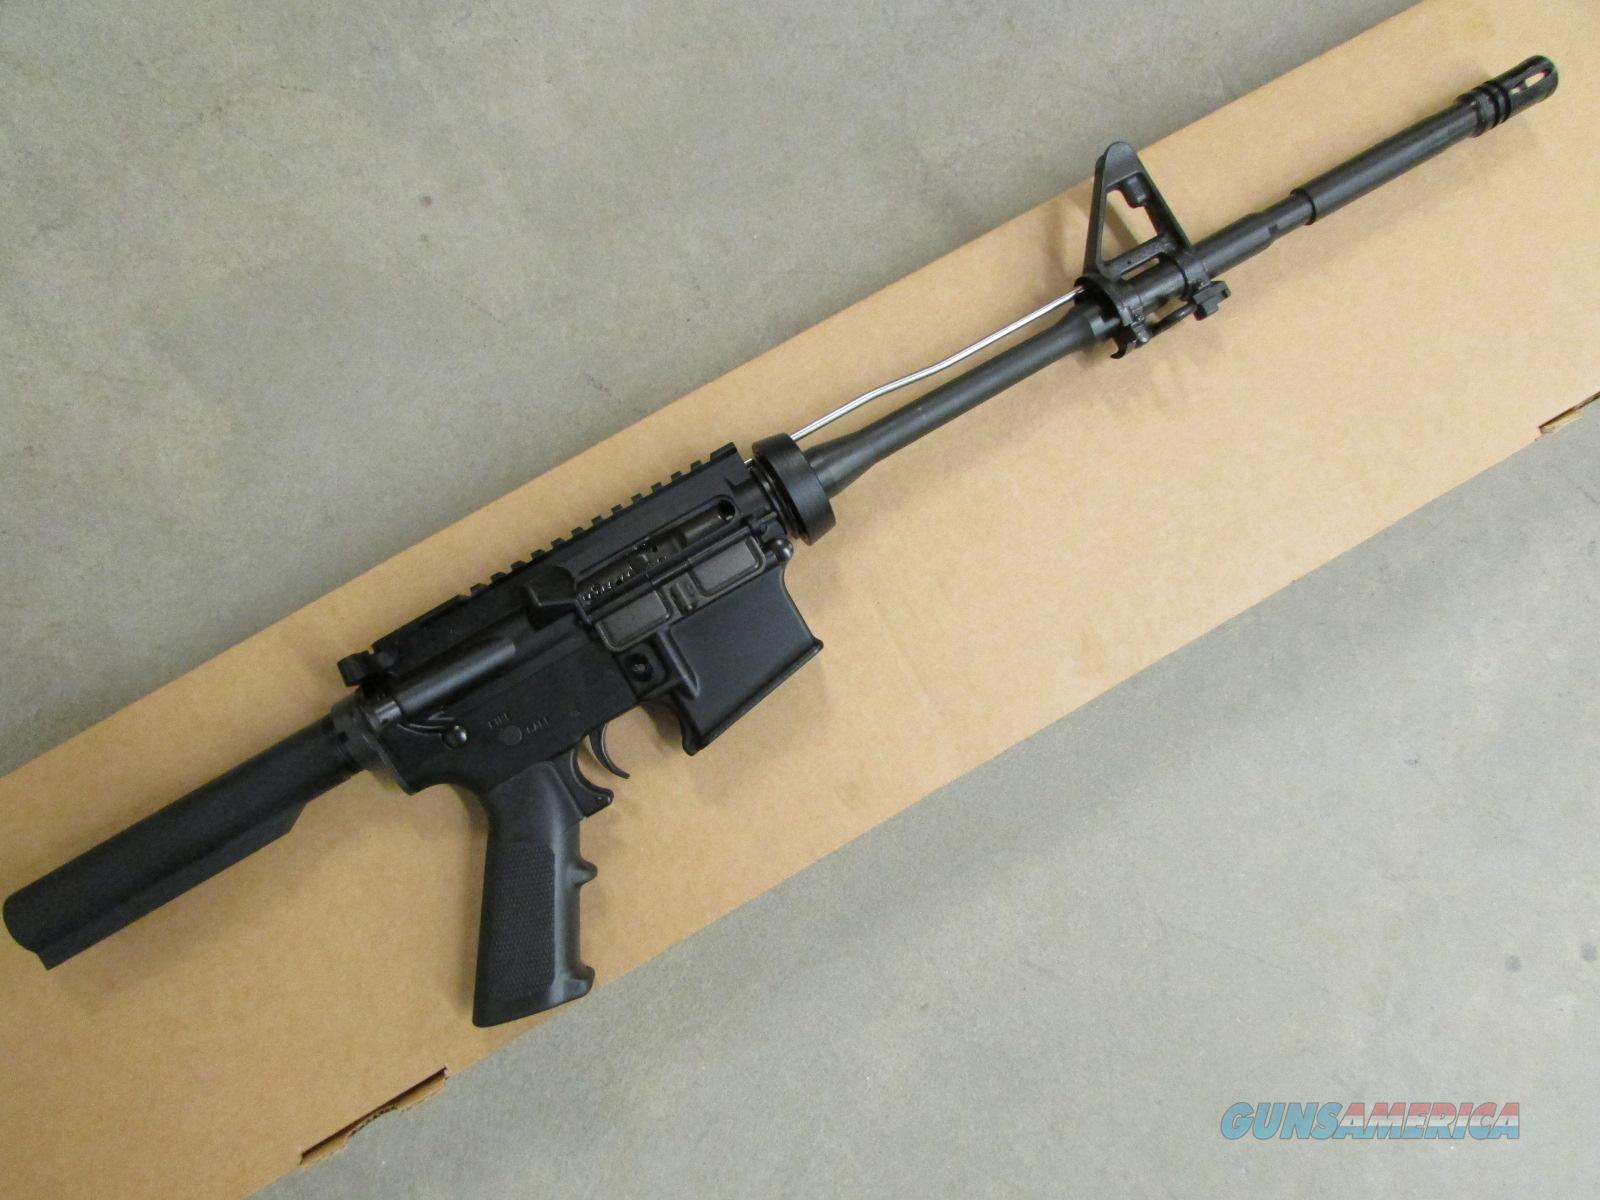 Colt LE6920-OEM1 AR-15 Platform with A2 Front Sight 5.56 NATO  Guns > Rifles > Colt Military/Tactical Rifles